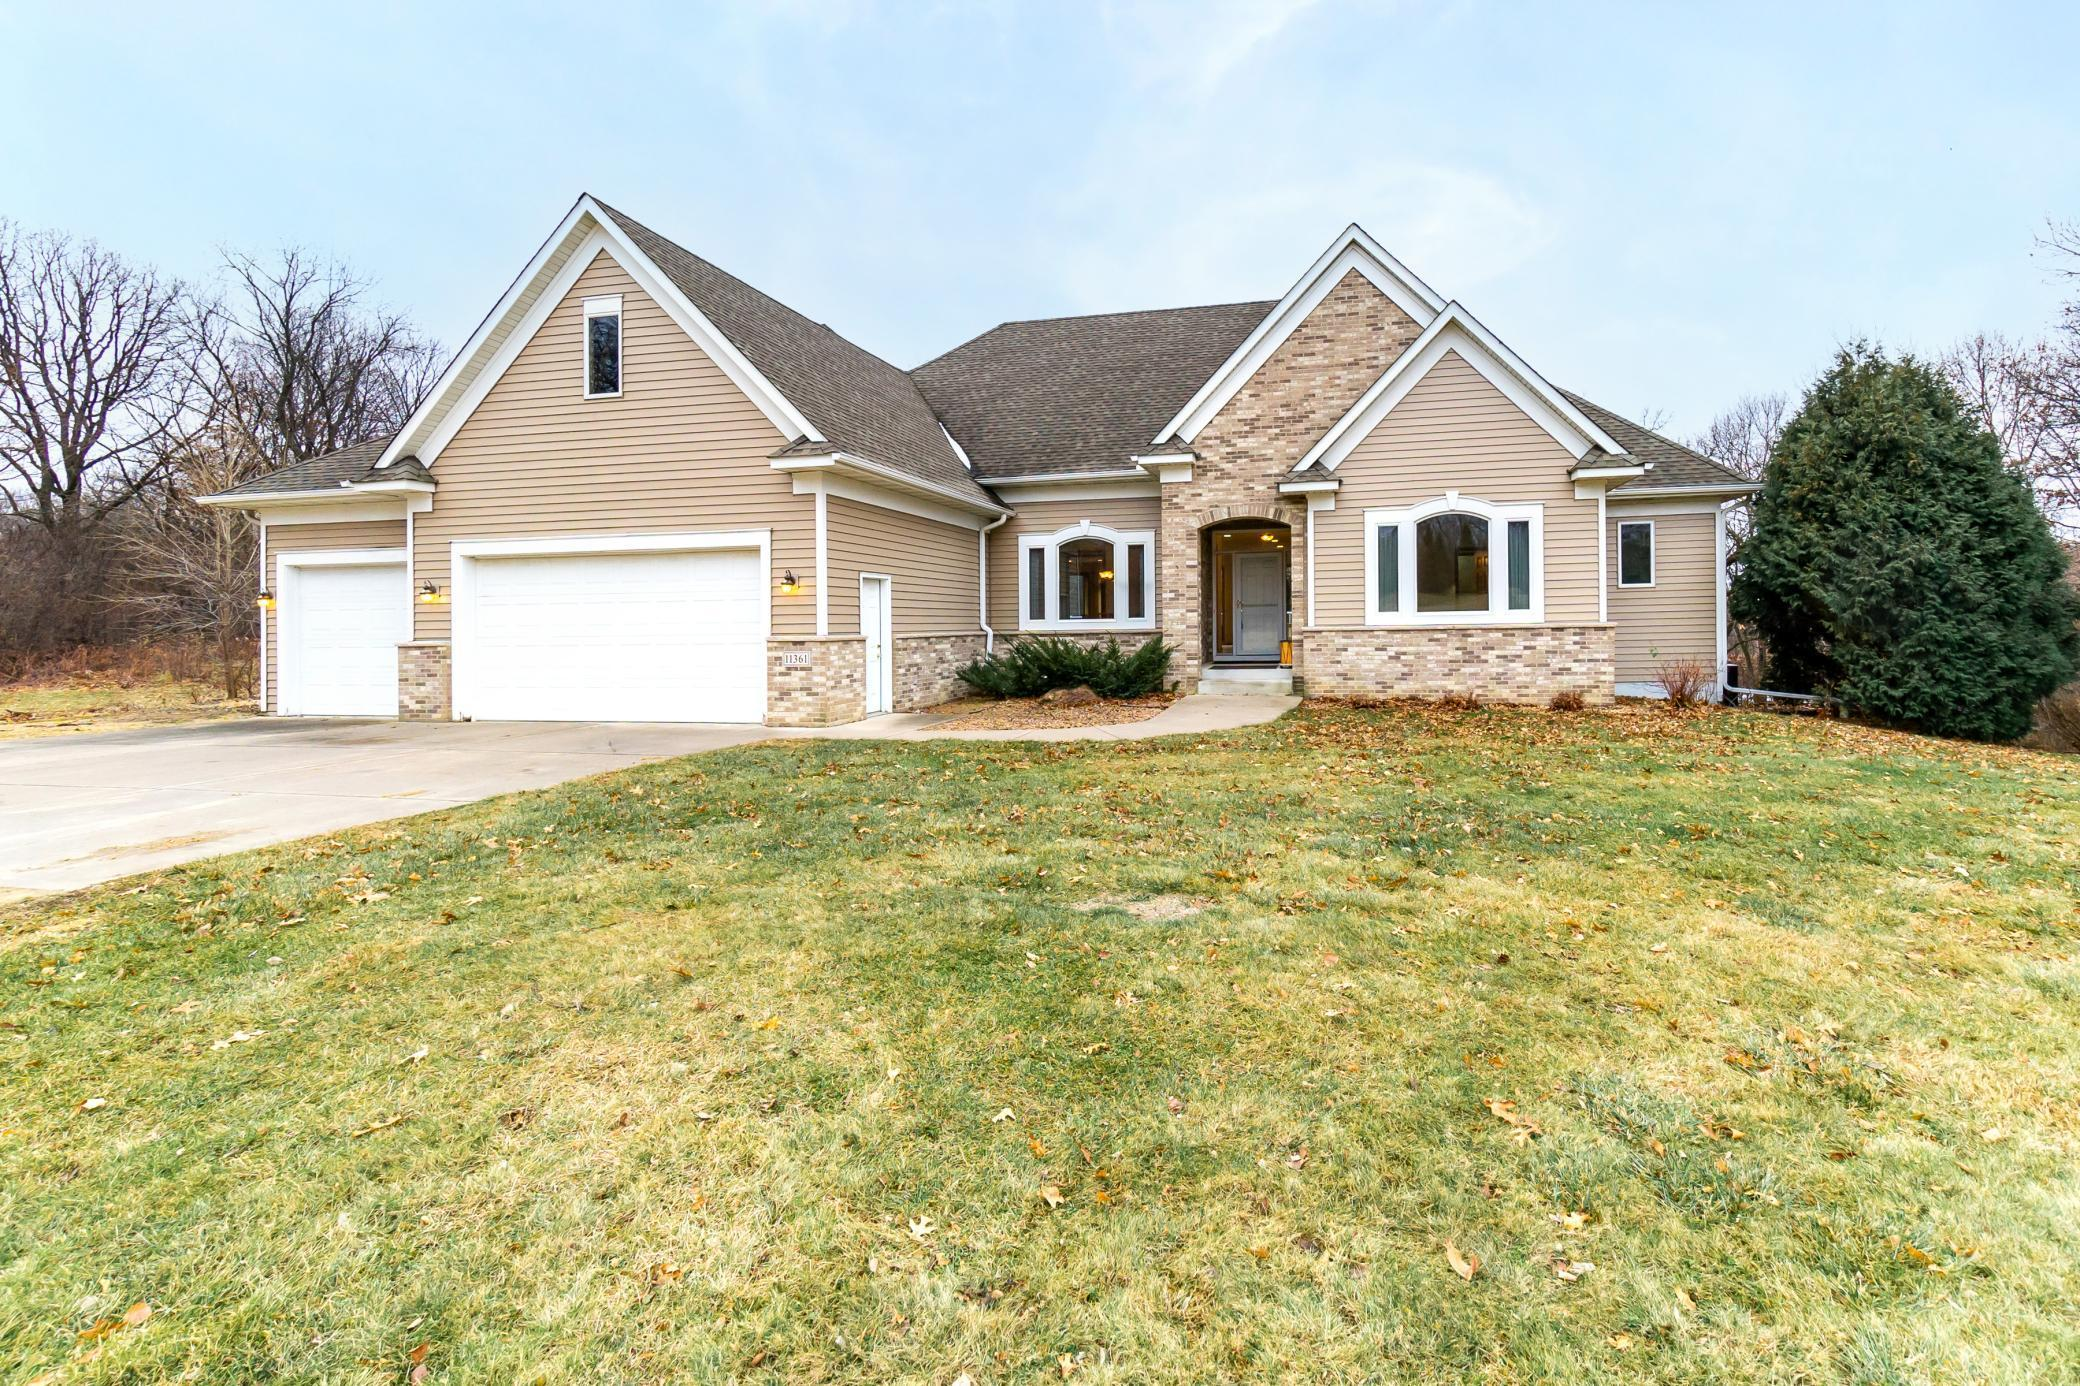 11361 Apennine Way Property Photo - Inver Grove Heights, MN real estate listing